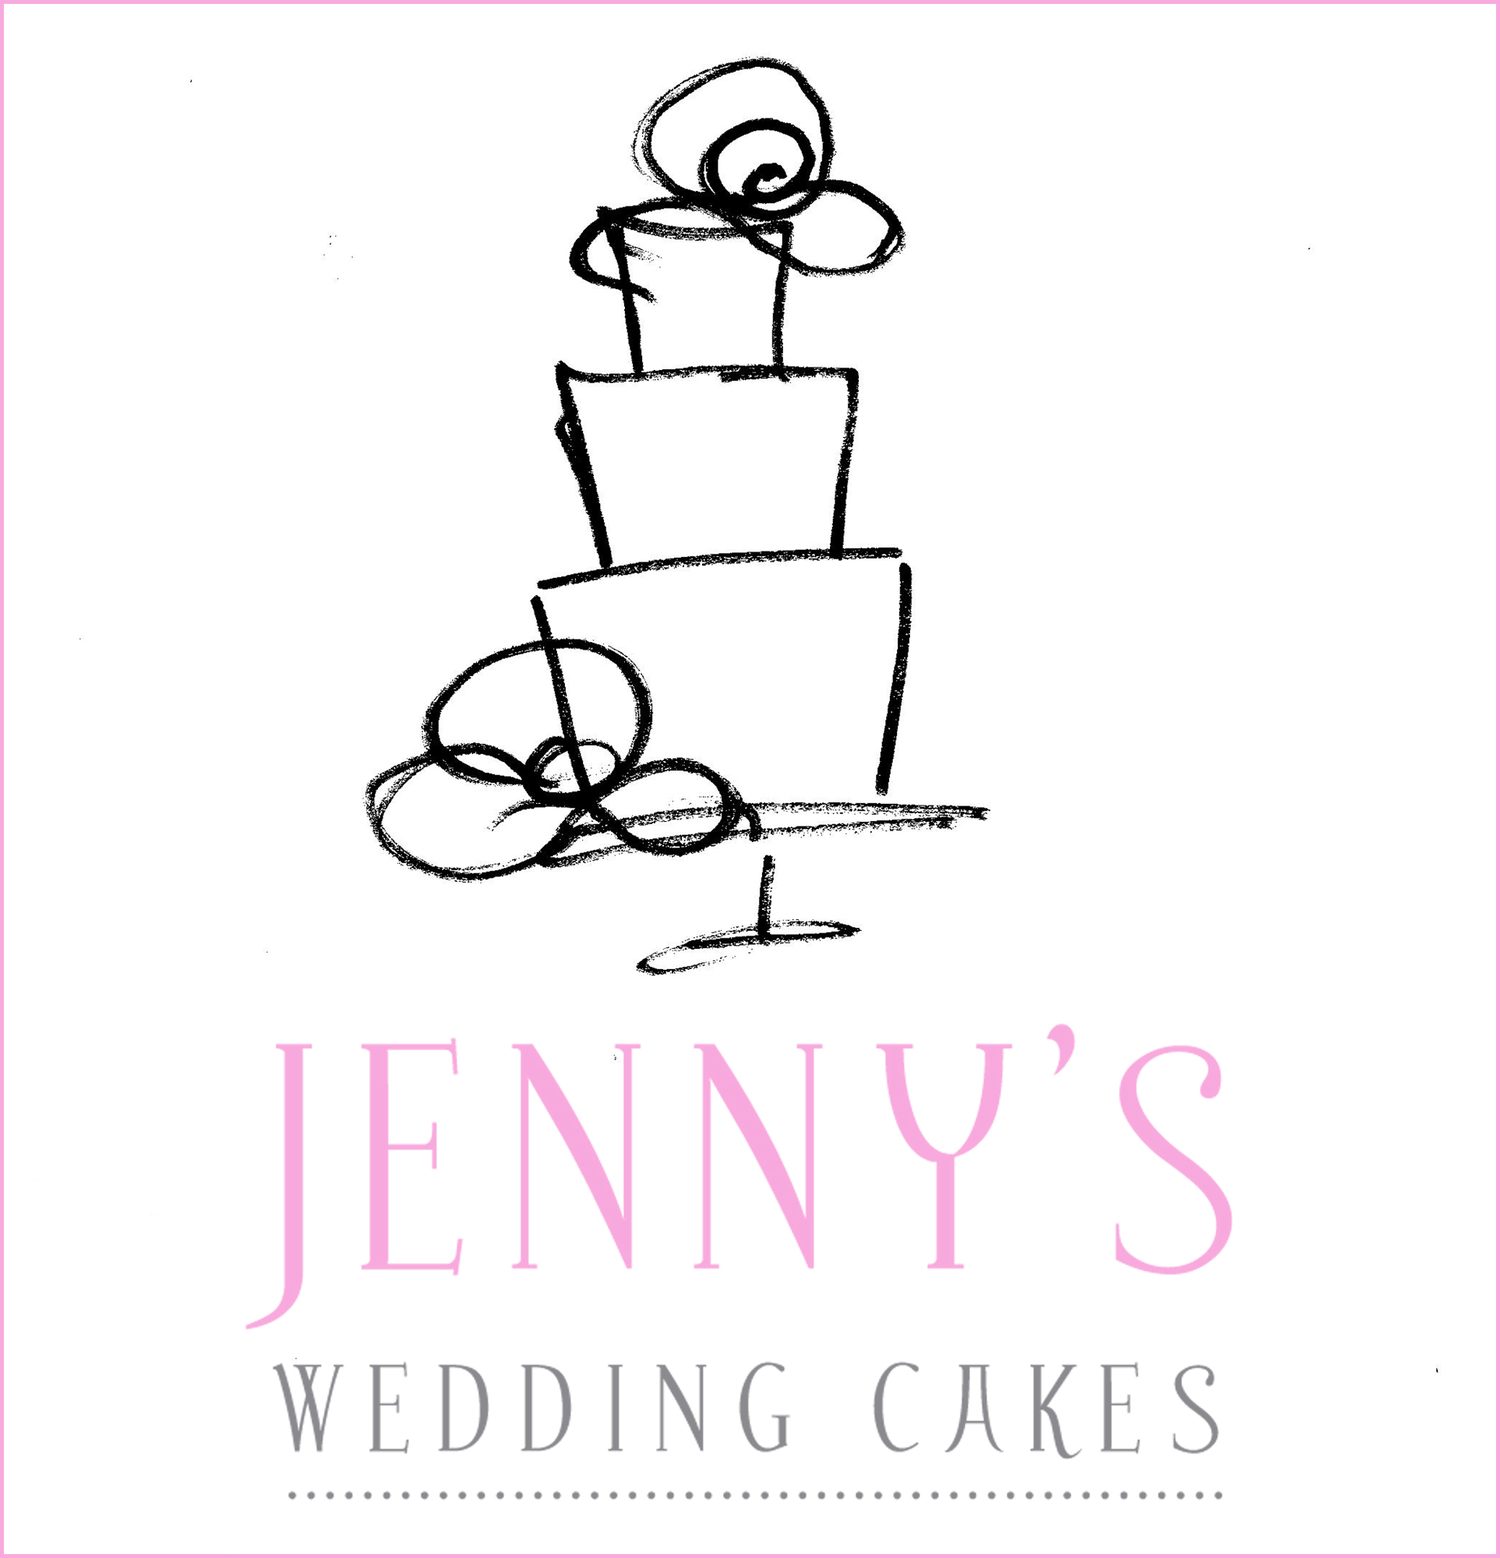 Jenny's Wedding Cakes